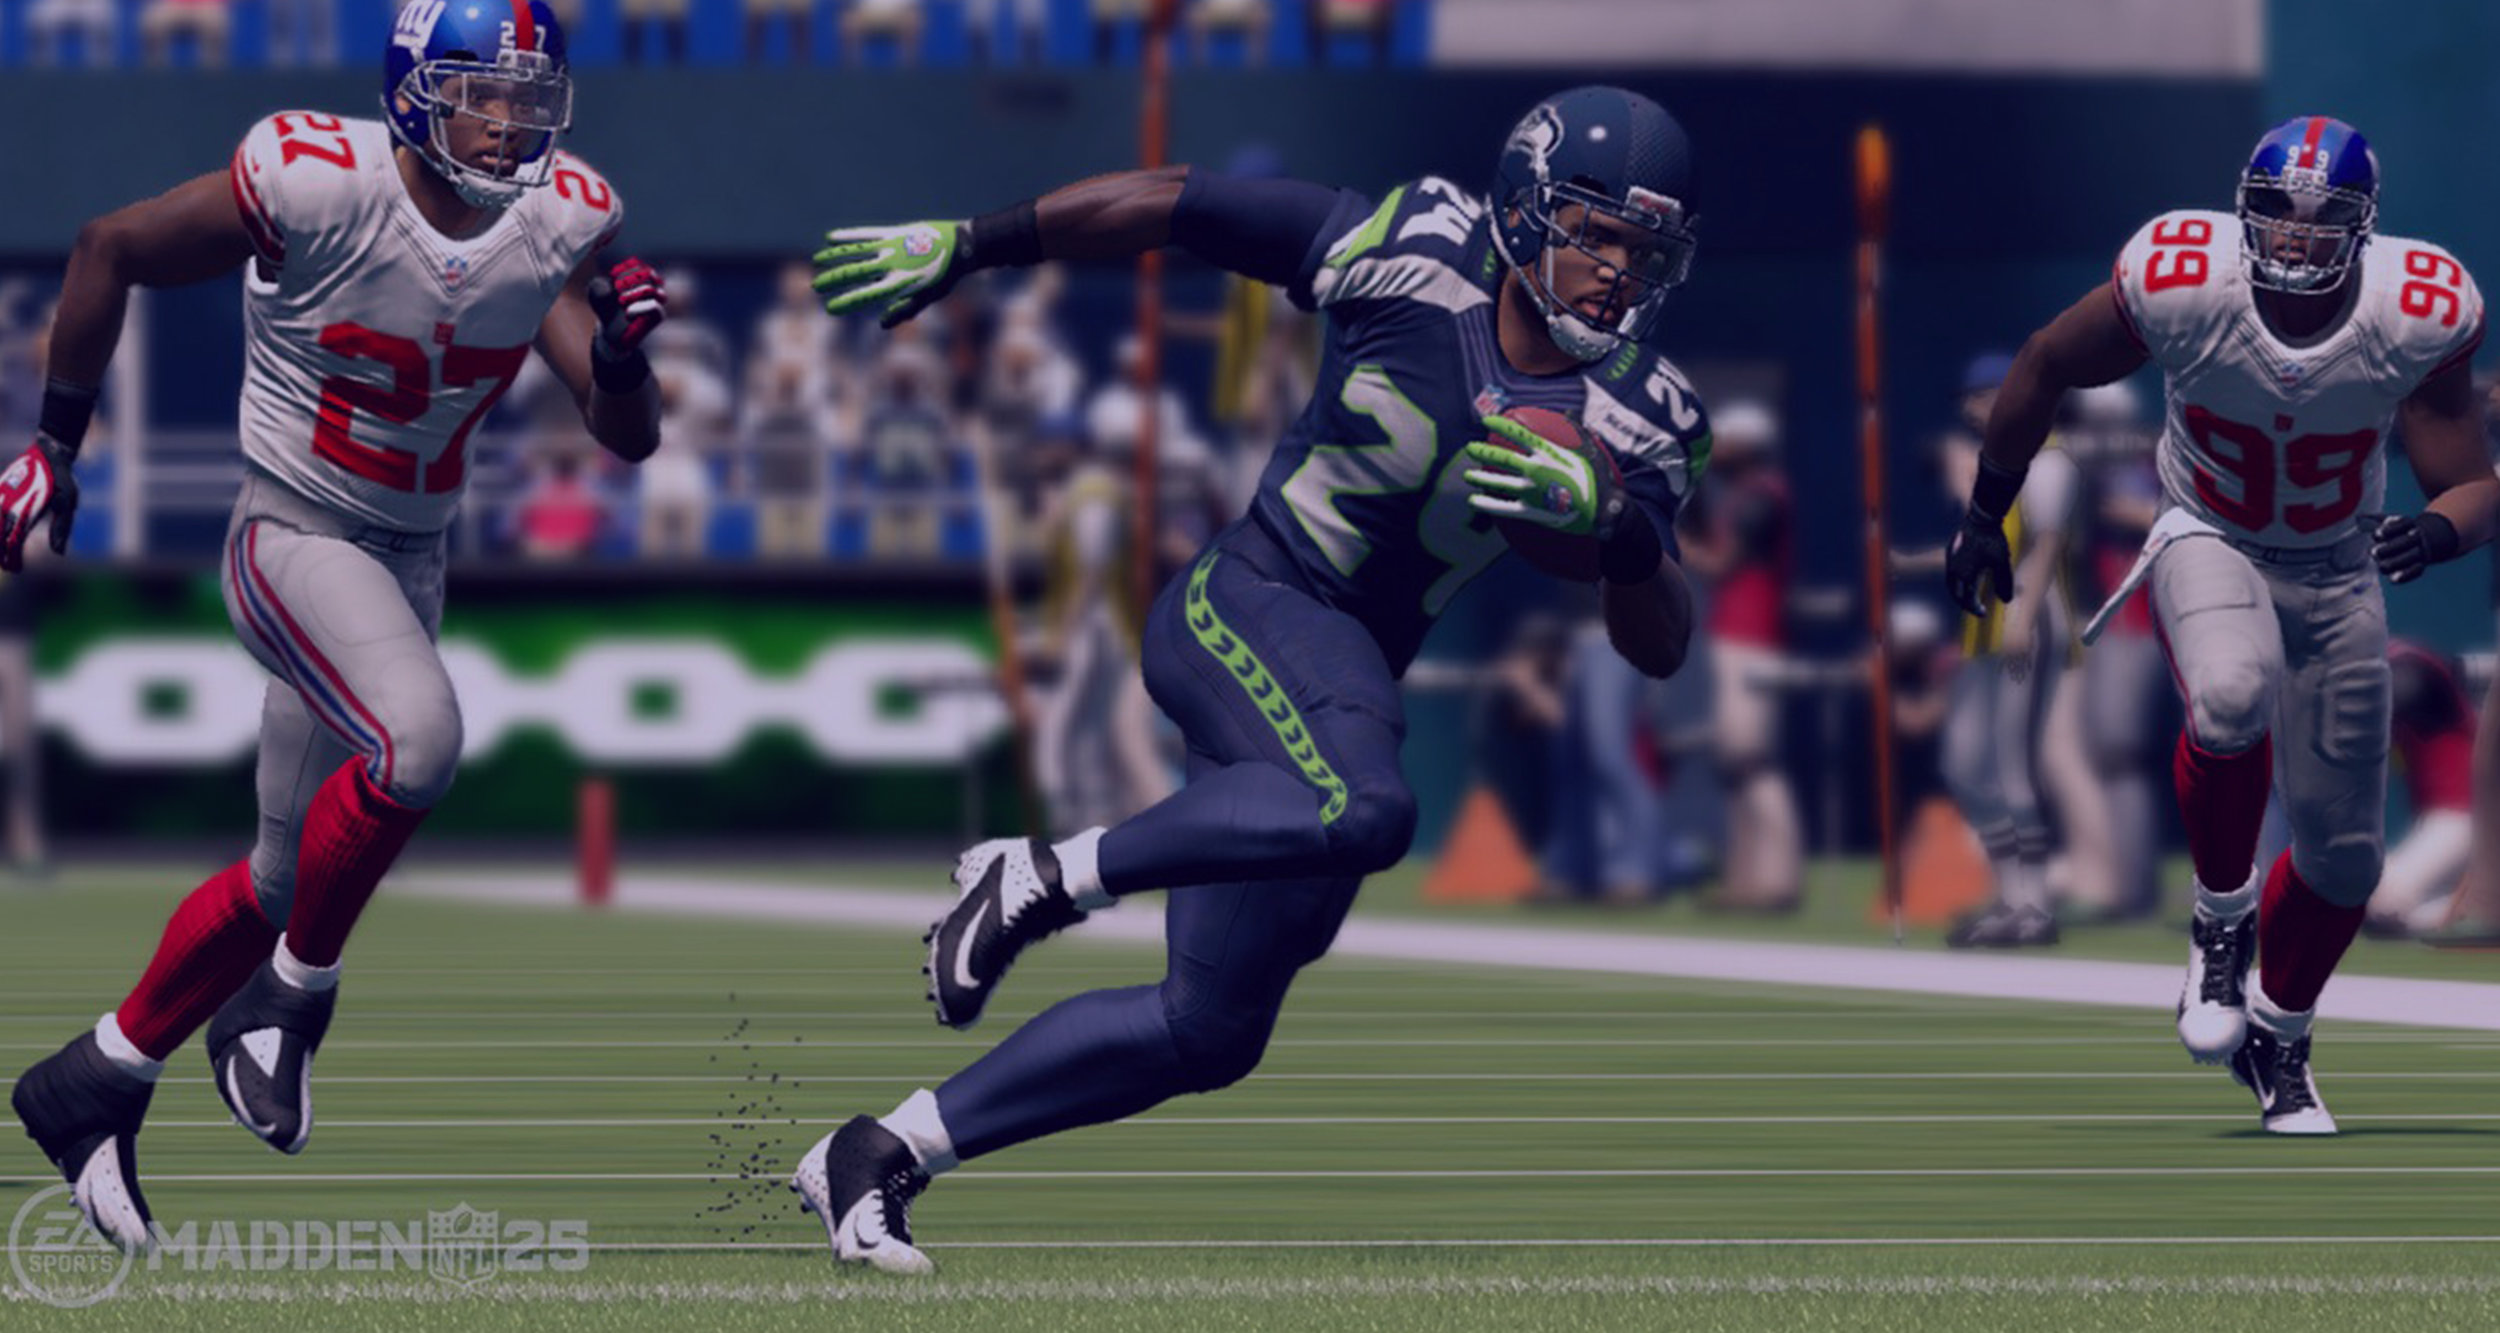 """""""Video games are creating smarter youth football players"""" - - WASHINGTON POST"""